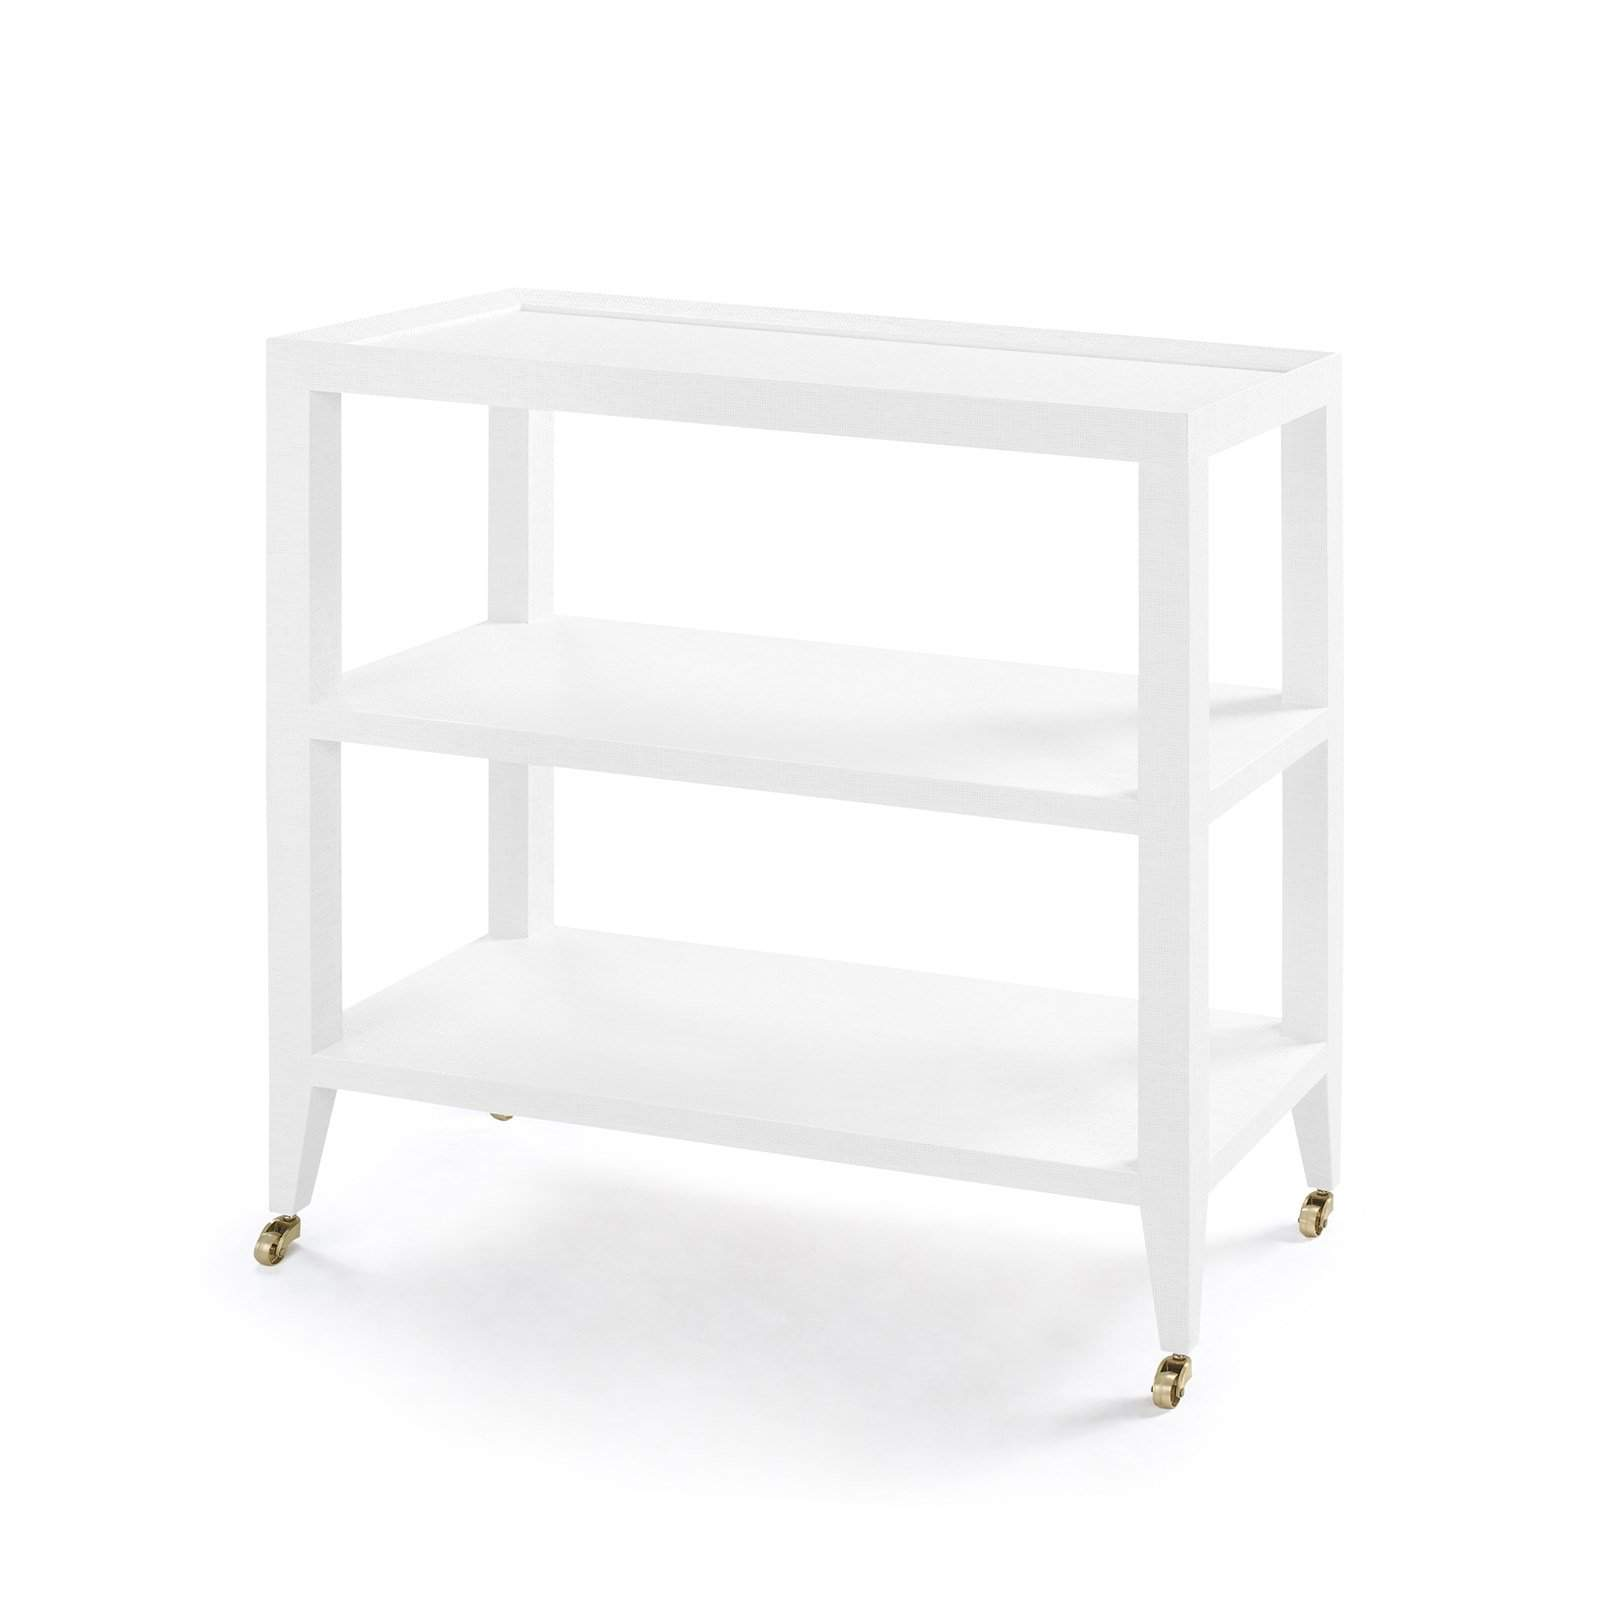 Bungalow 5 - ISADORA CONSOLE TABLE in WHITE